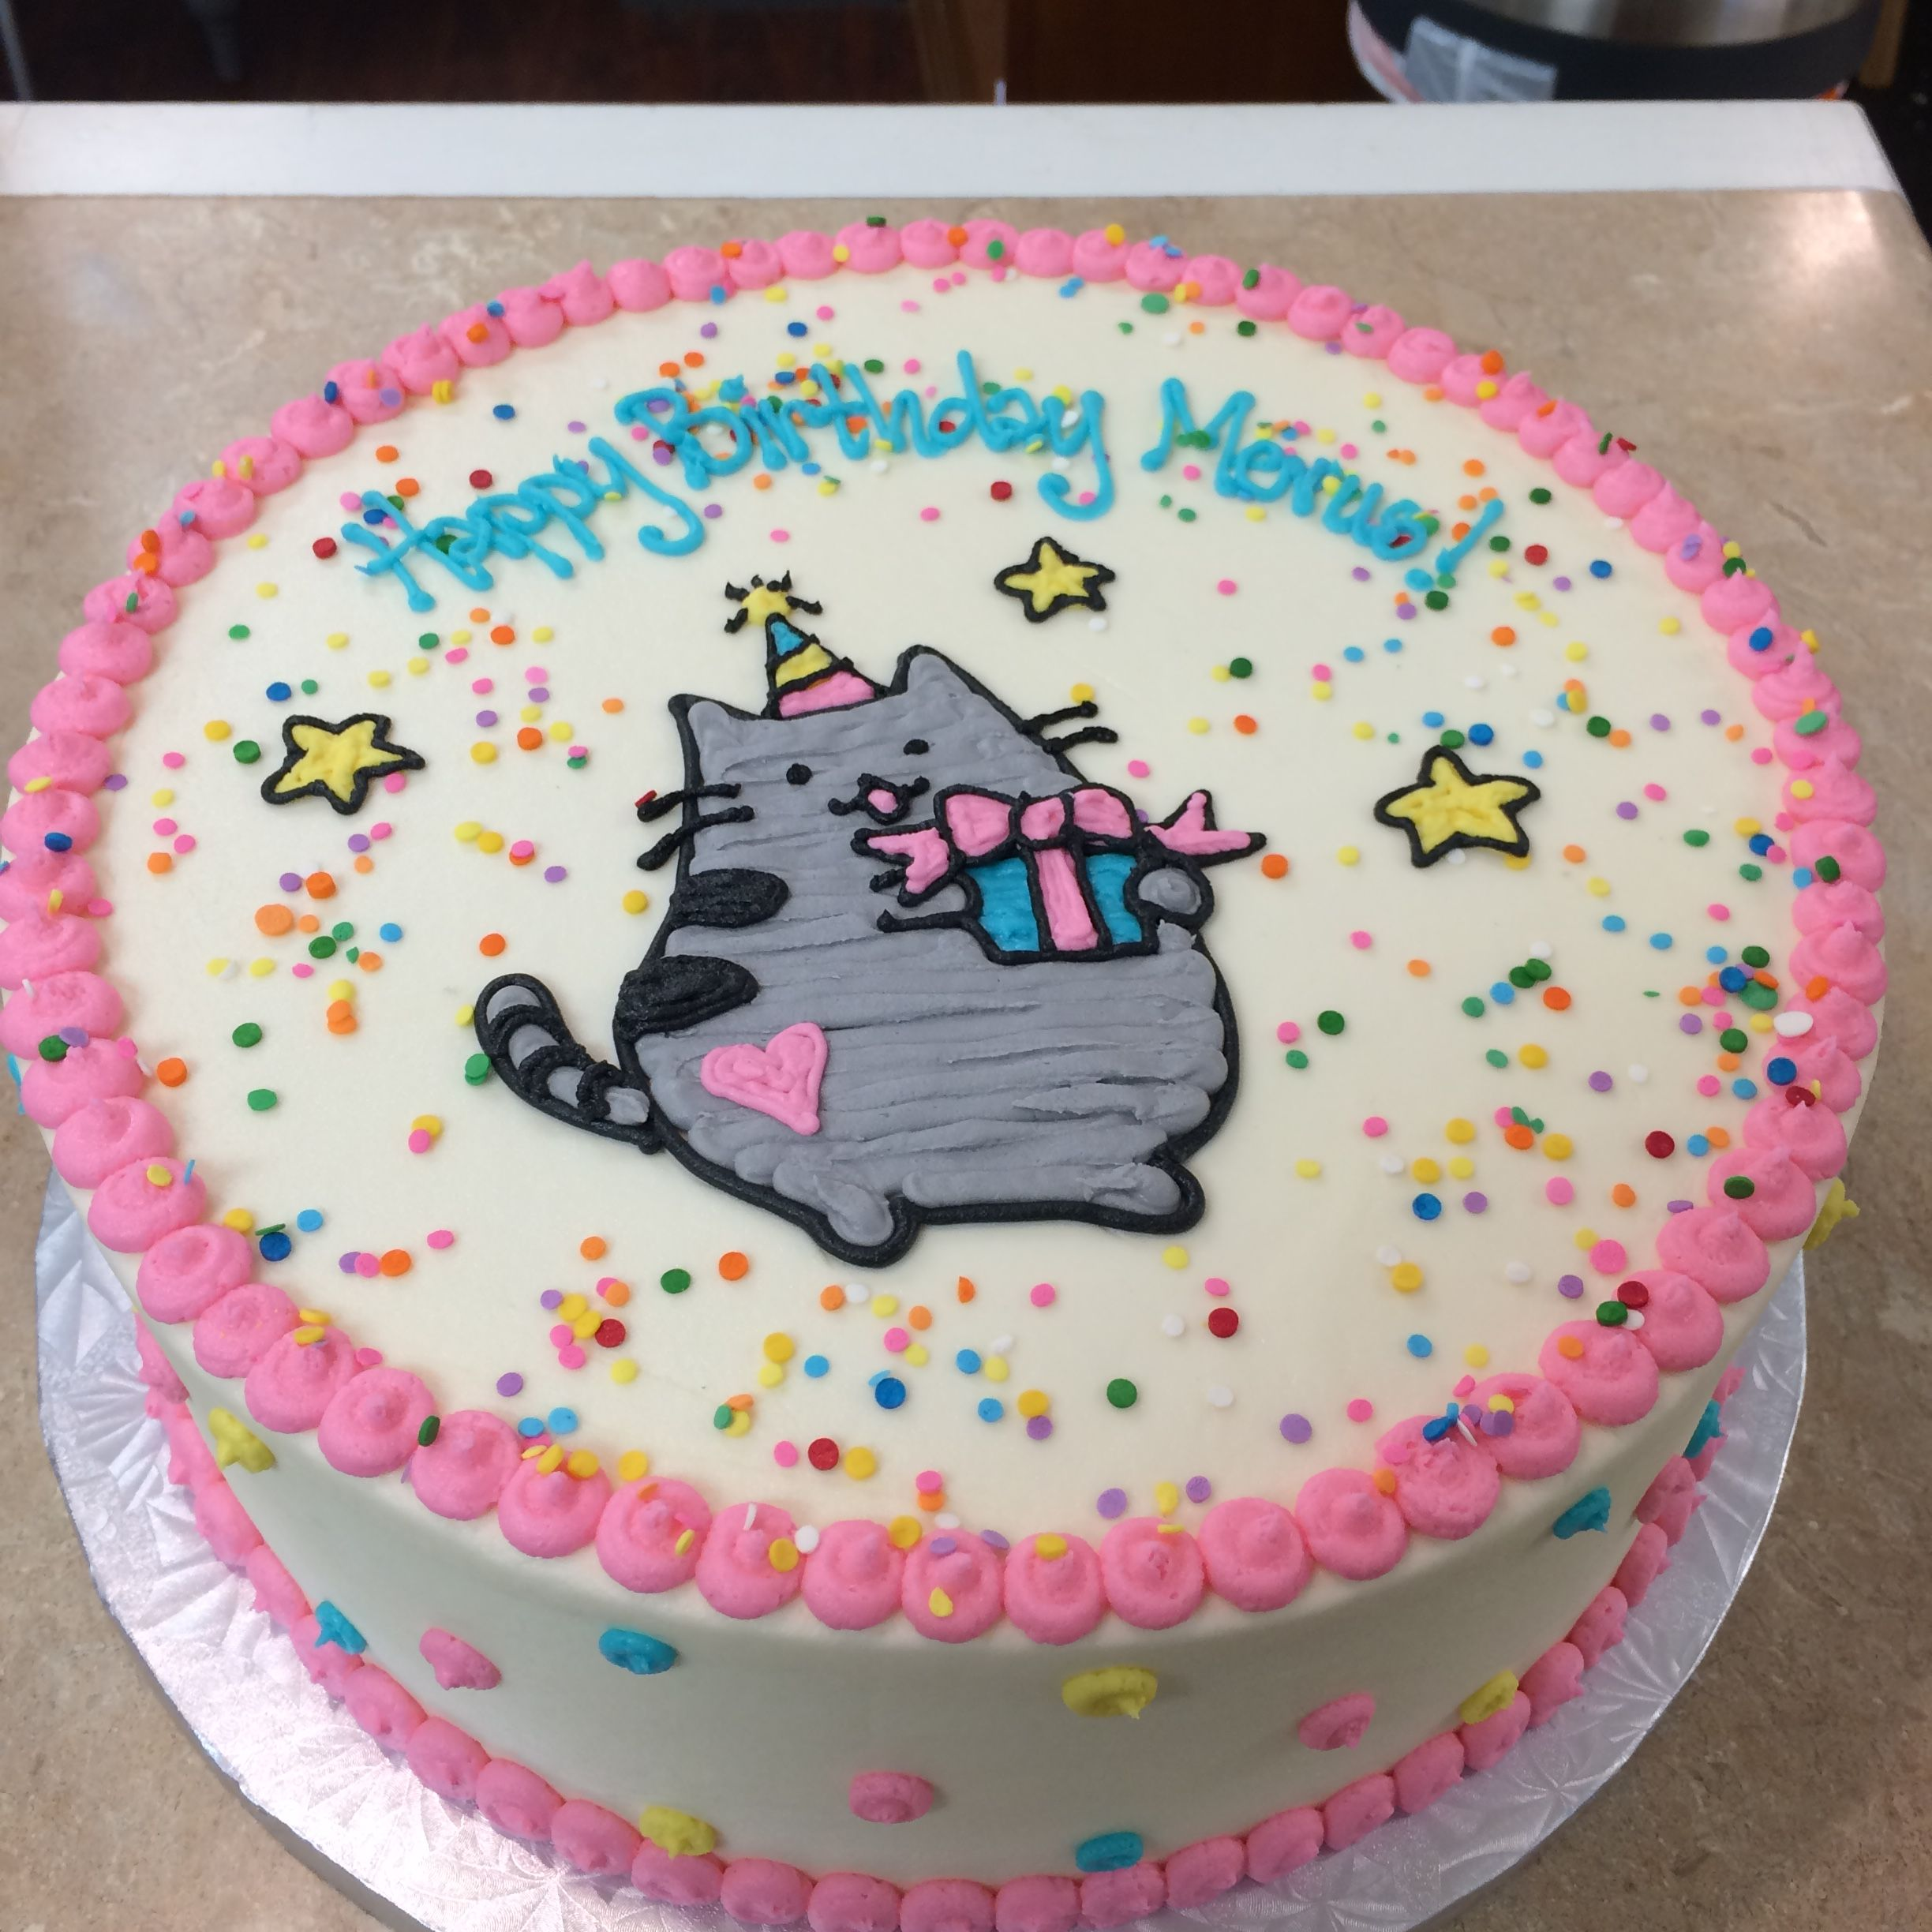 Pusheen cat cake All buttercream Done for The Cakery Bakery St